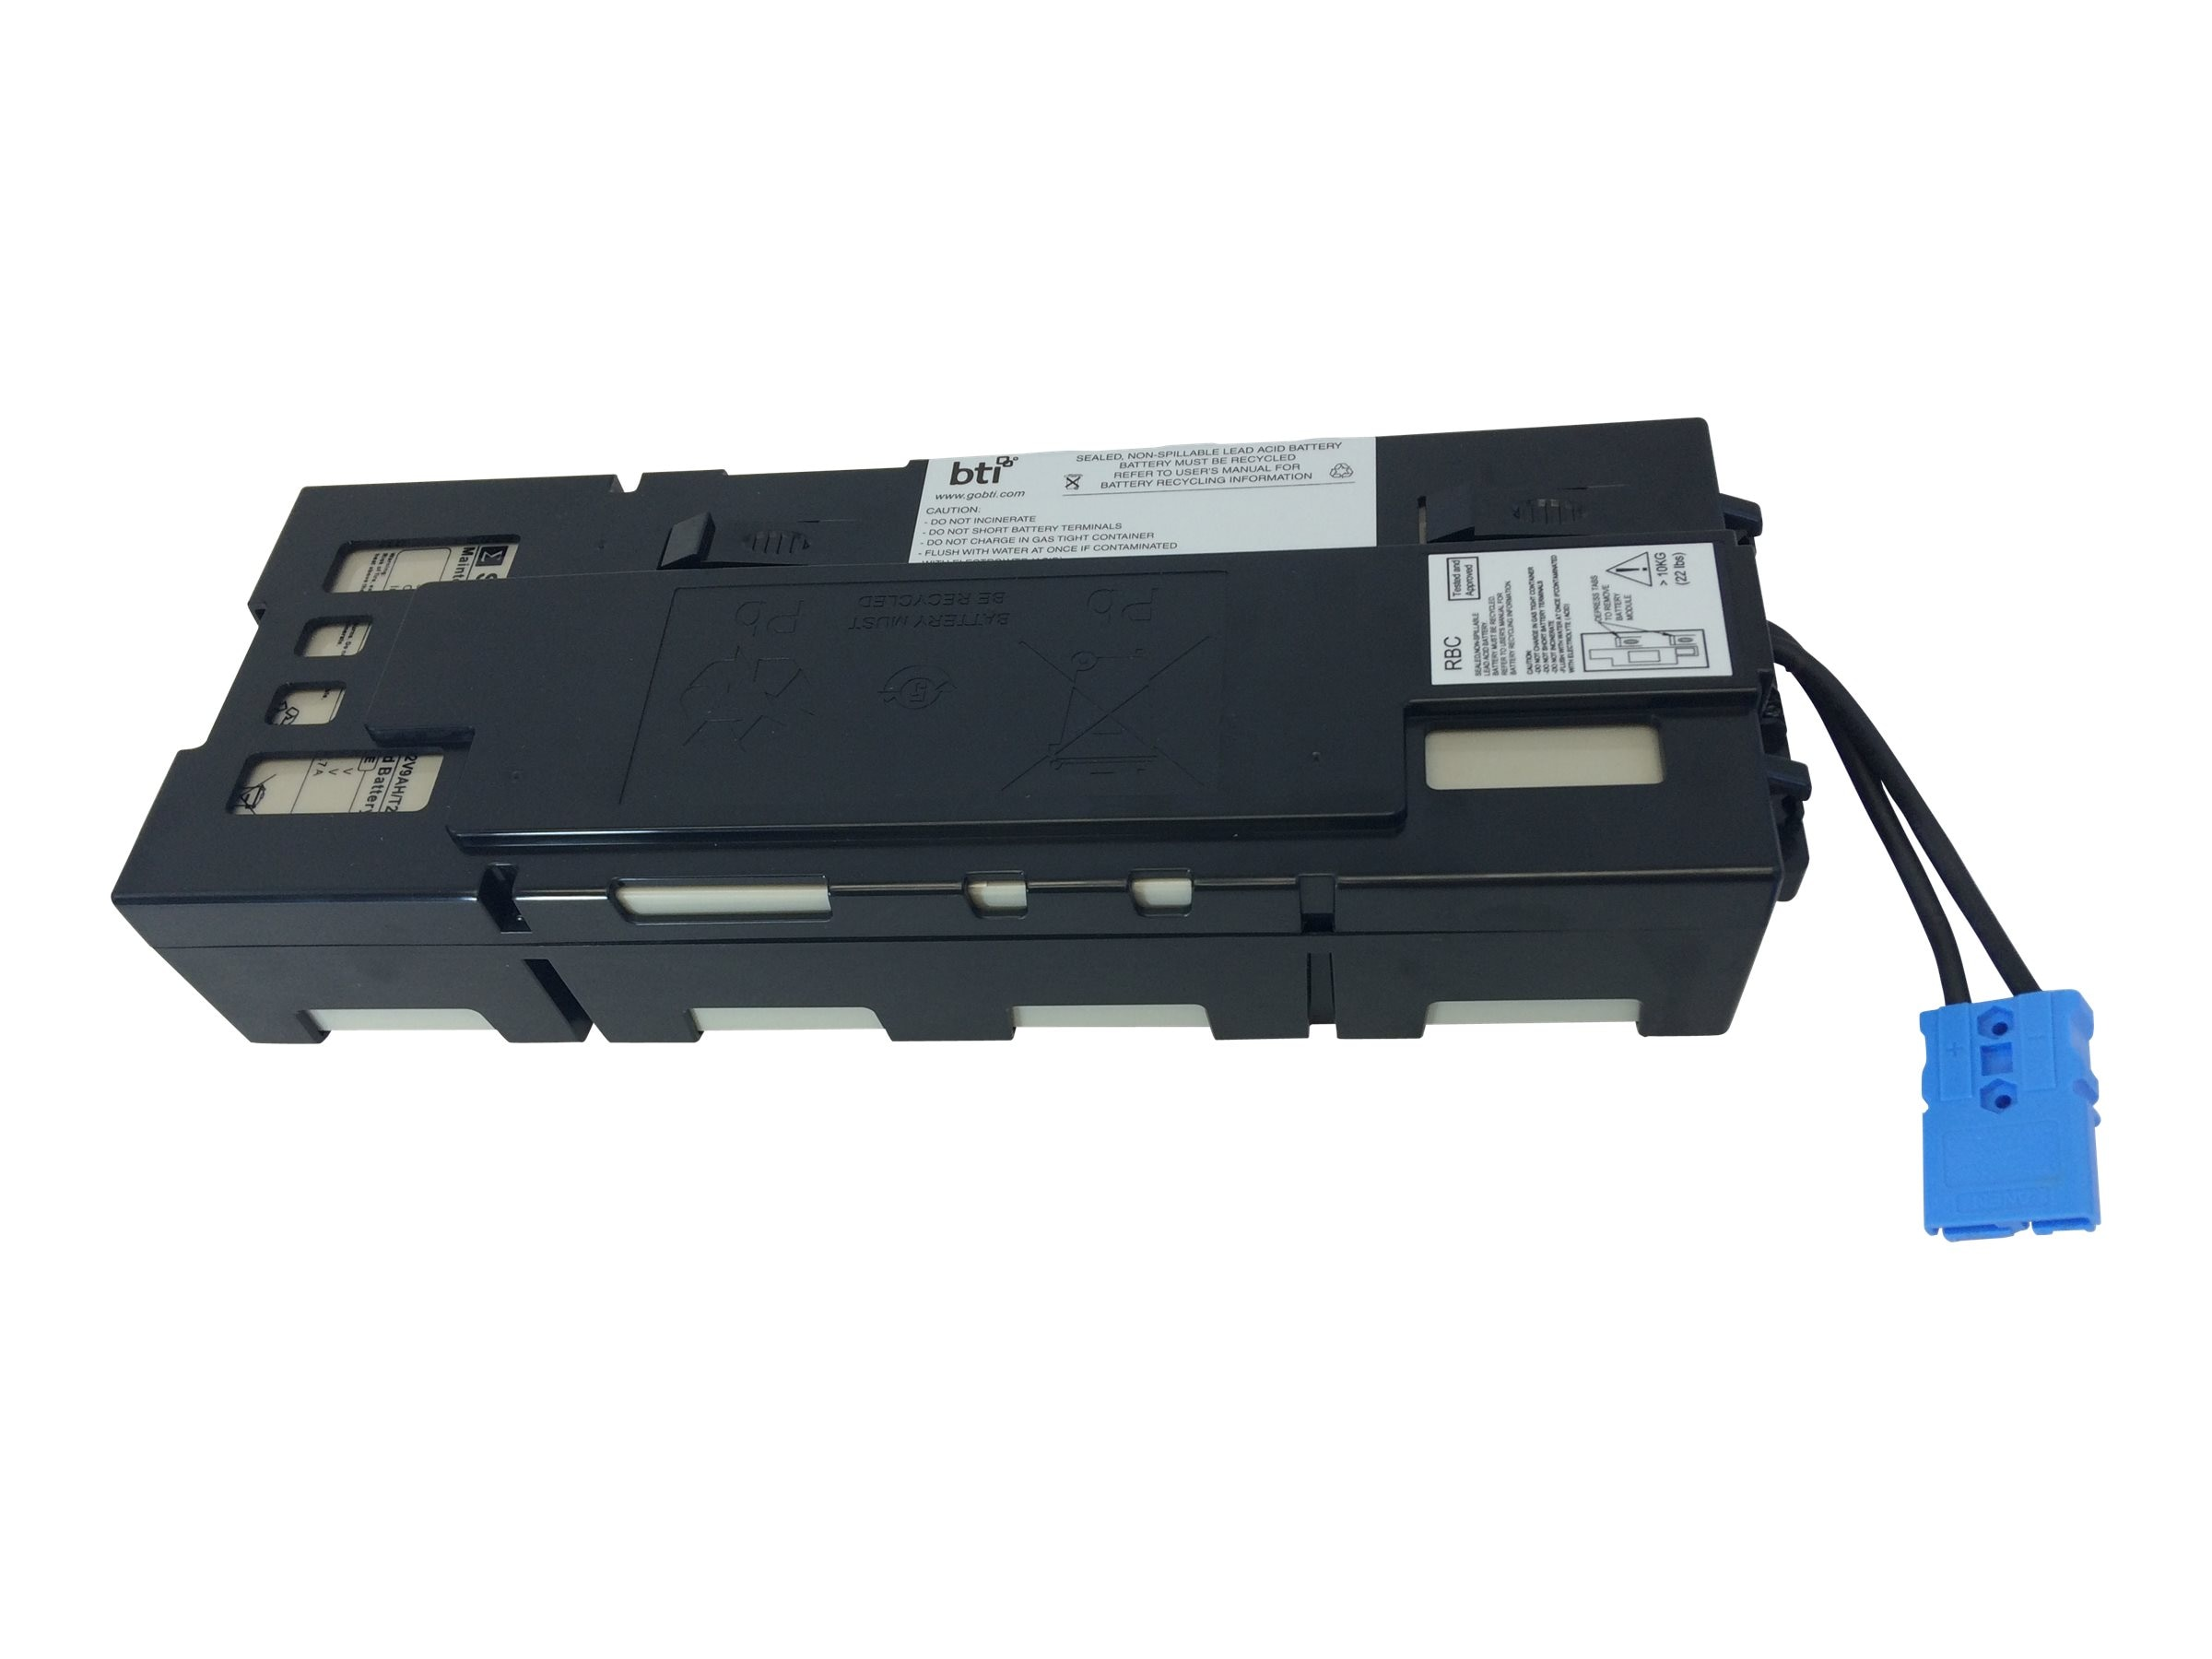 BTI RBC115 APC UPS Replacement Battery BATTSMX1500RM2U APCRBC115, APCRBC115-SLA115